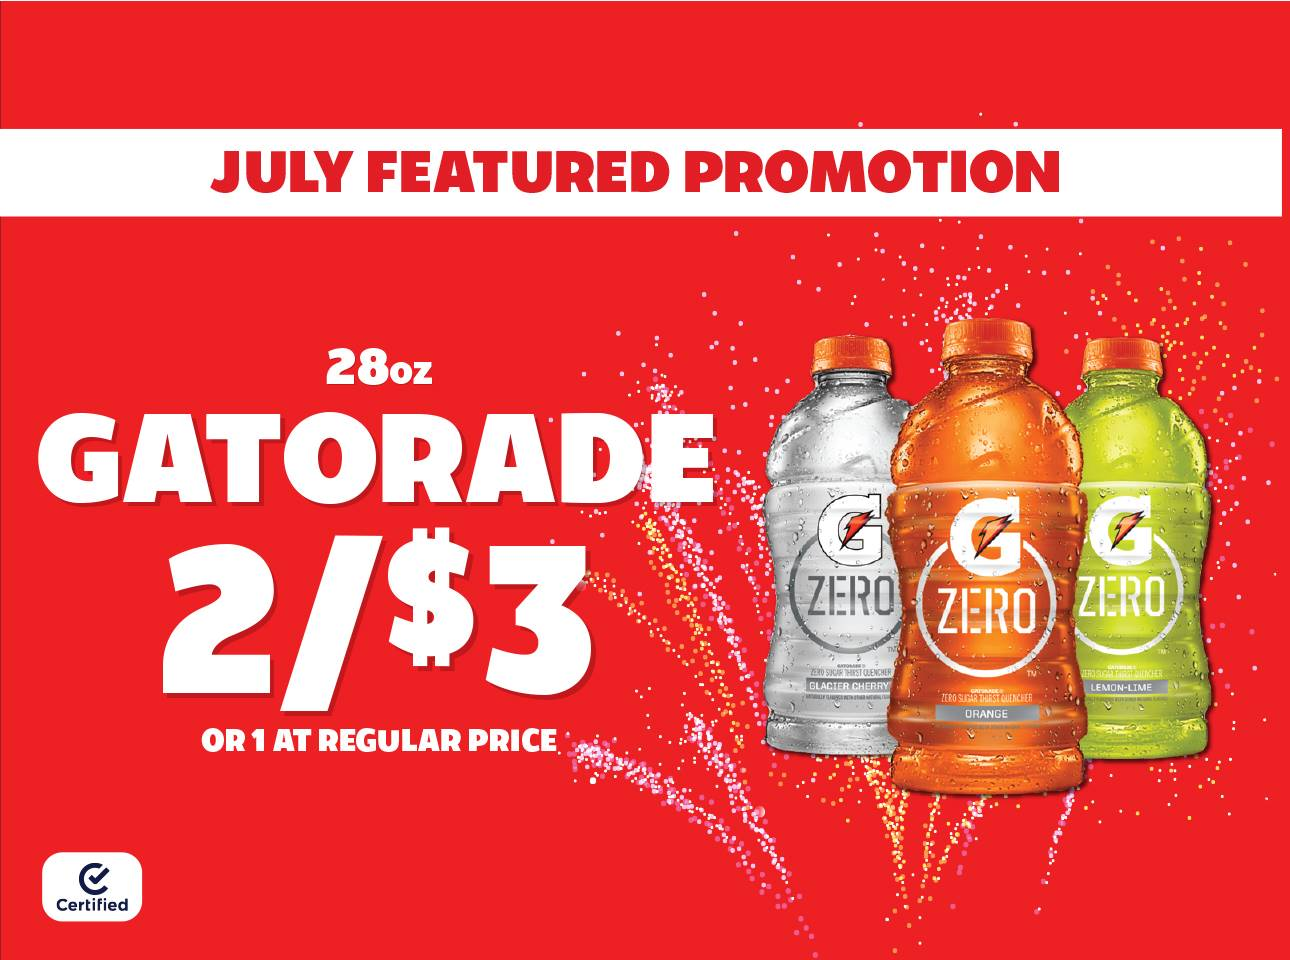 July Featured Promo: 28oz Gatorade 2 for $3 or 1 at Reg Price